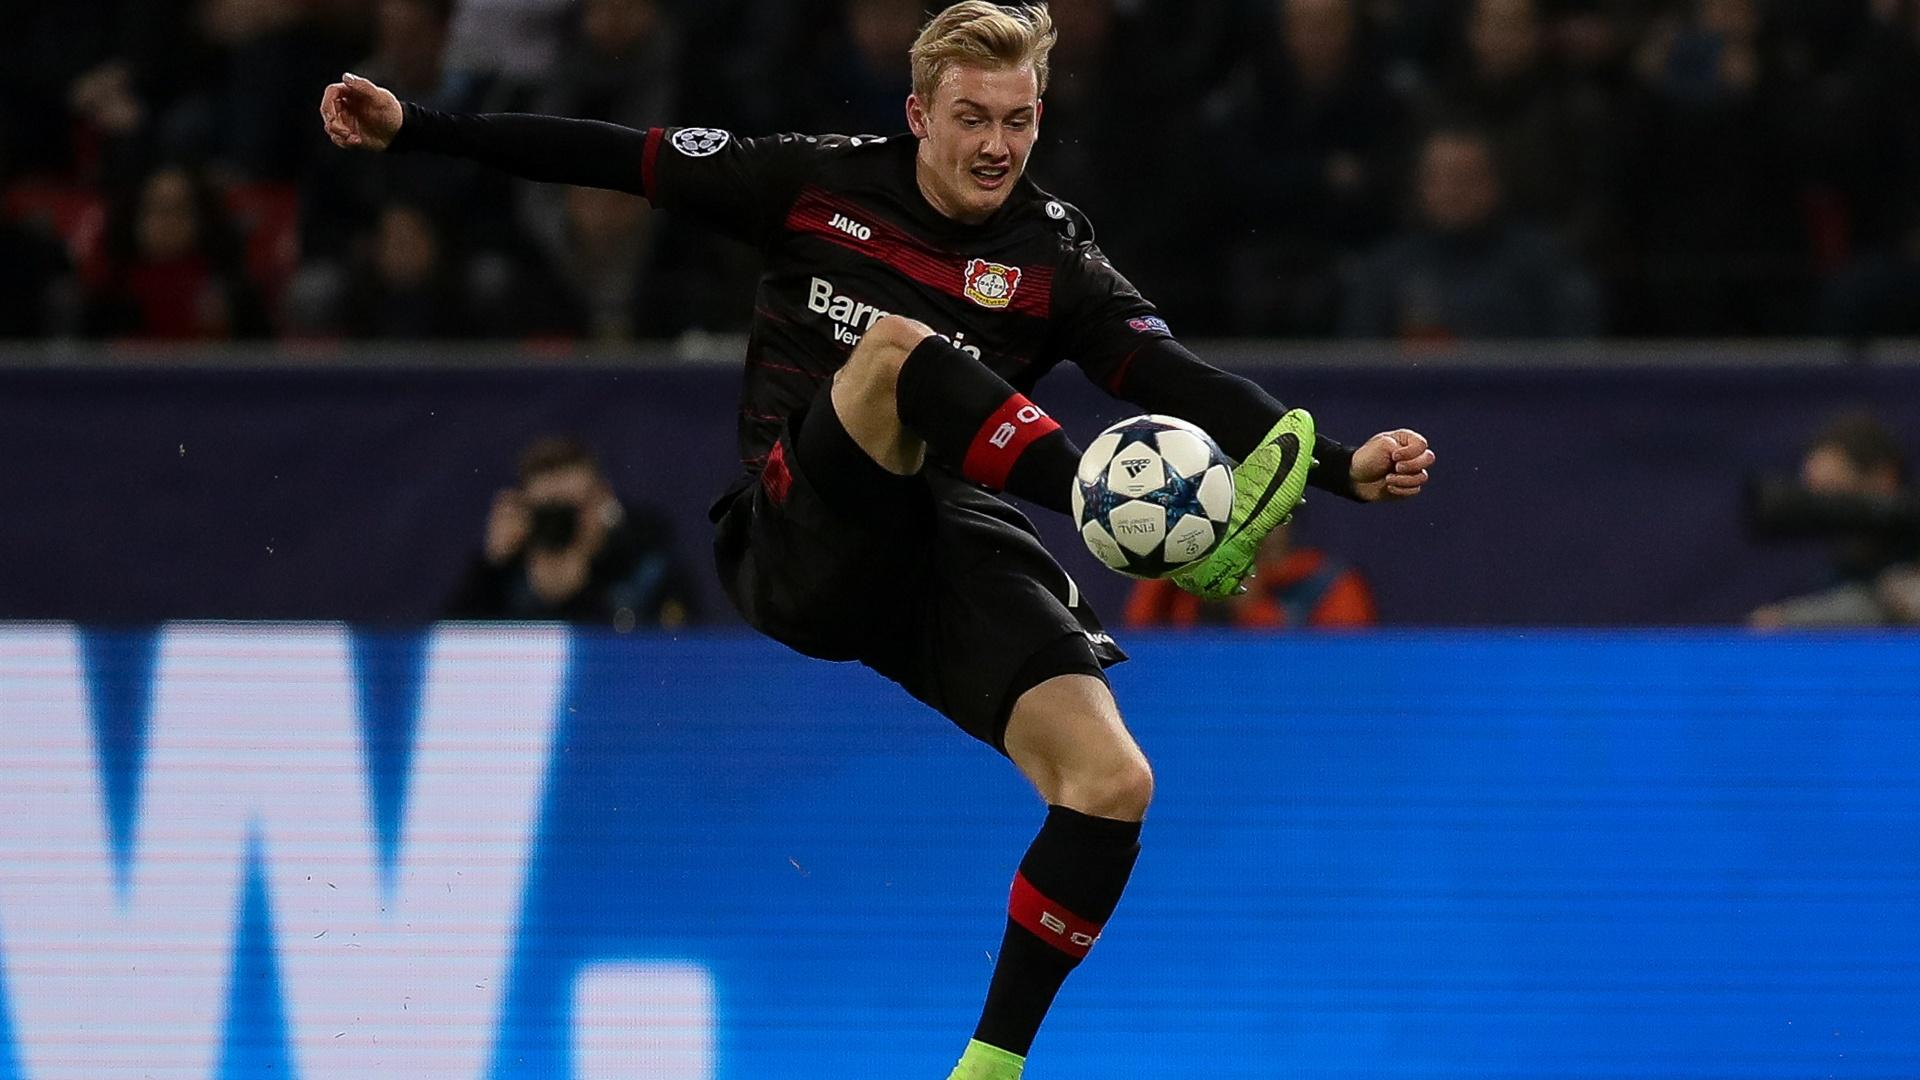 Brandt agent denies Bayern Munich agreement - BeSoccer